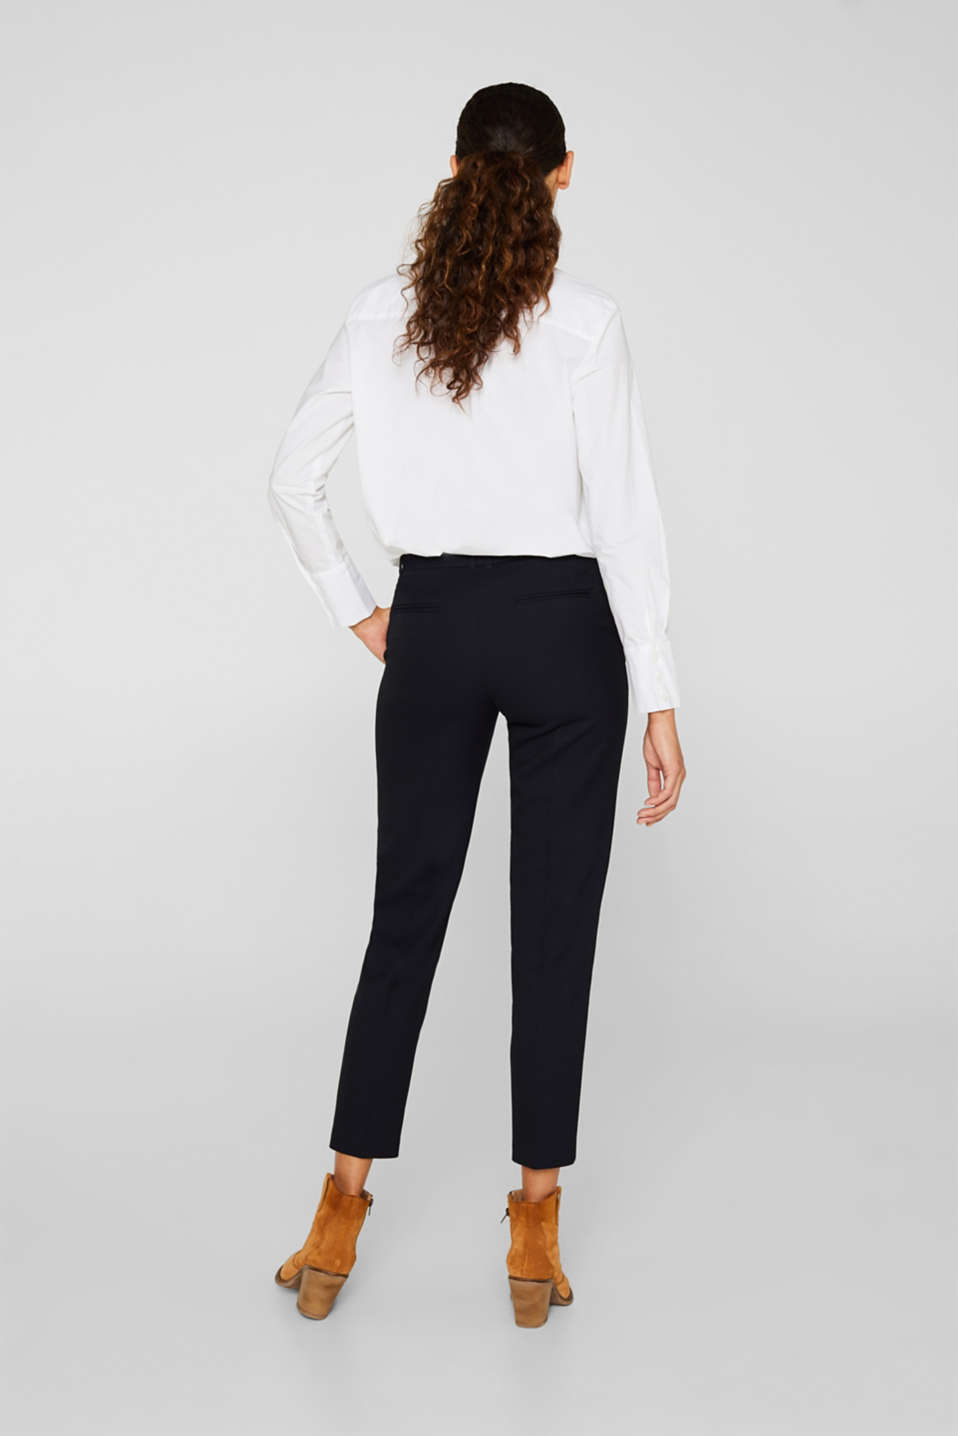 TONE-IN-TONE STRUCTURE Mix + Match Stretch Trousers, NAVY, detail image number 3